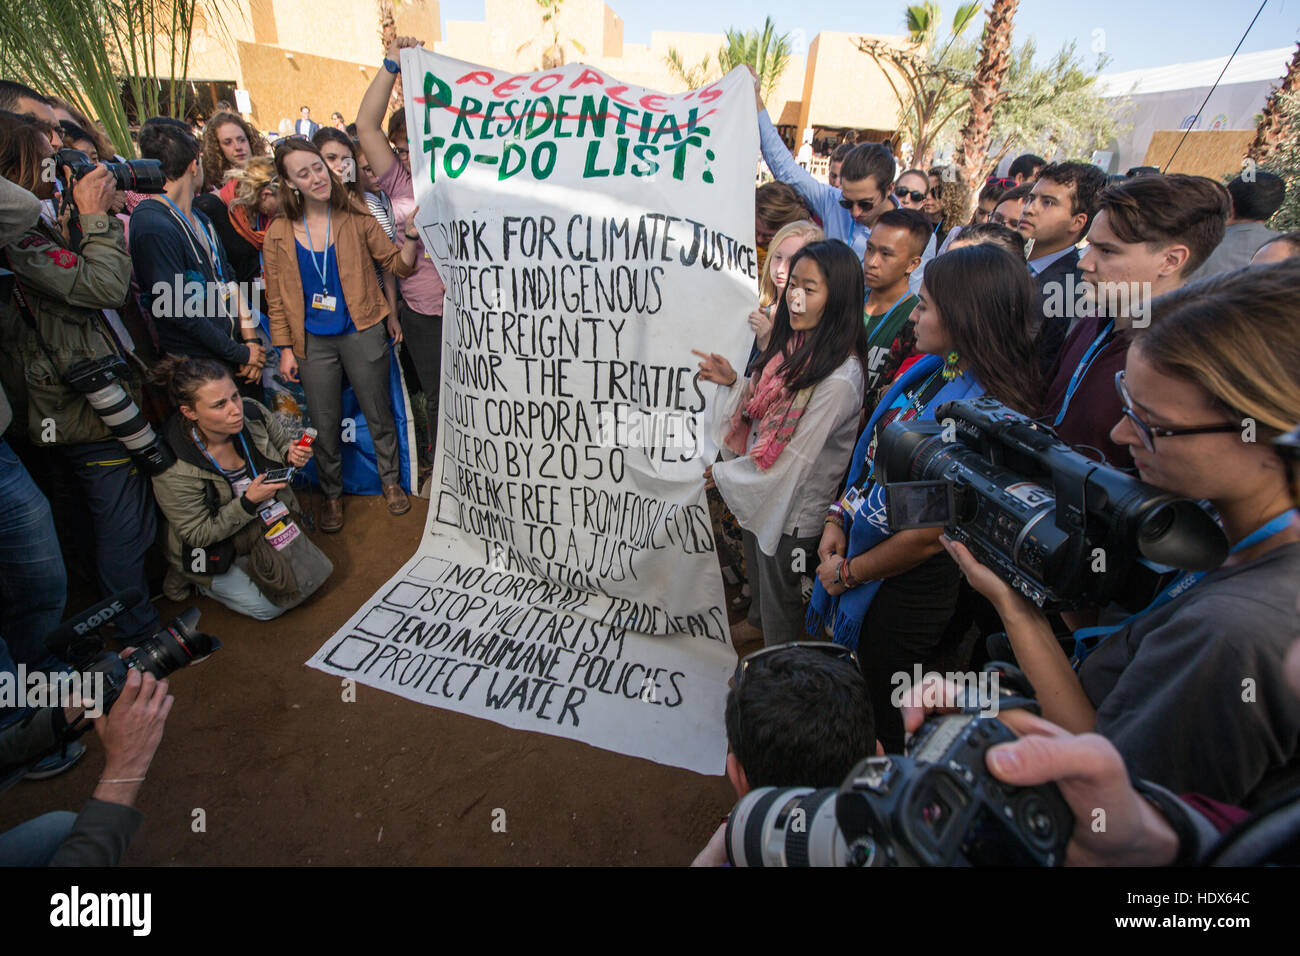 Climate Justice unveil their 'People's To-Do List', in the wake of Donald Trump being elected to the position of President Elect of the USA, during the COP22 UN Climate Change Conference being held in Marrakech, Morocco, on 9 November 2016. Stock Photo